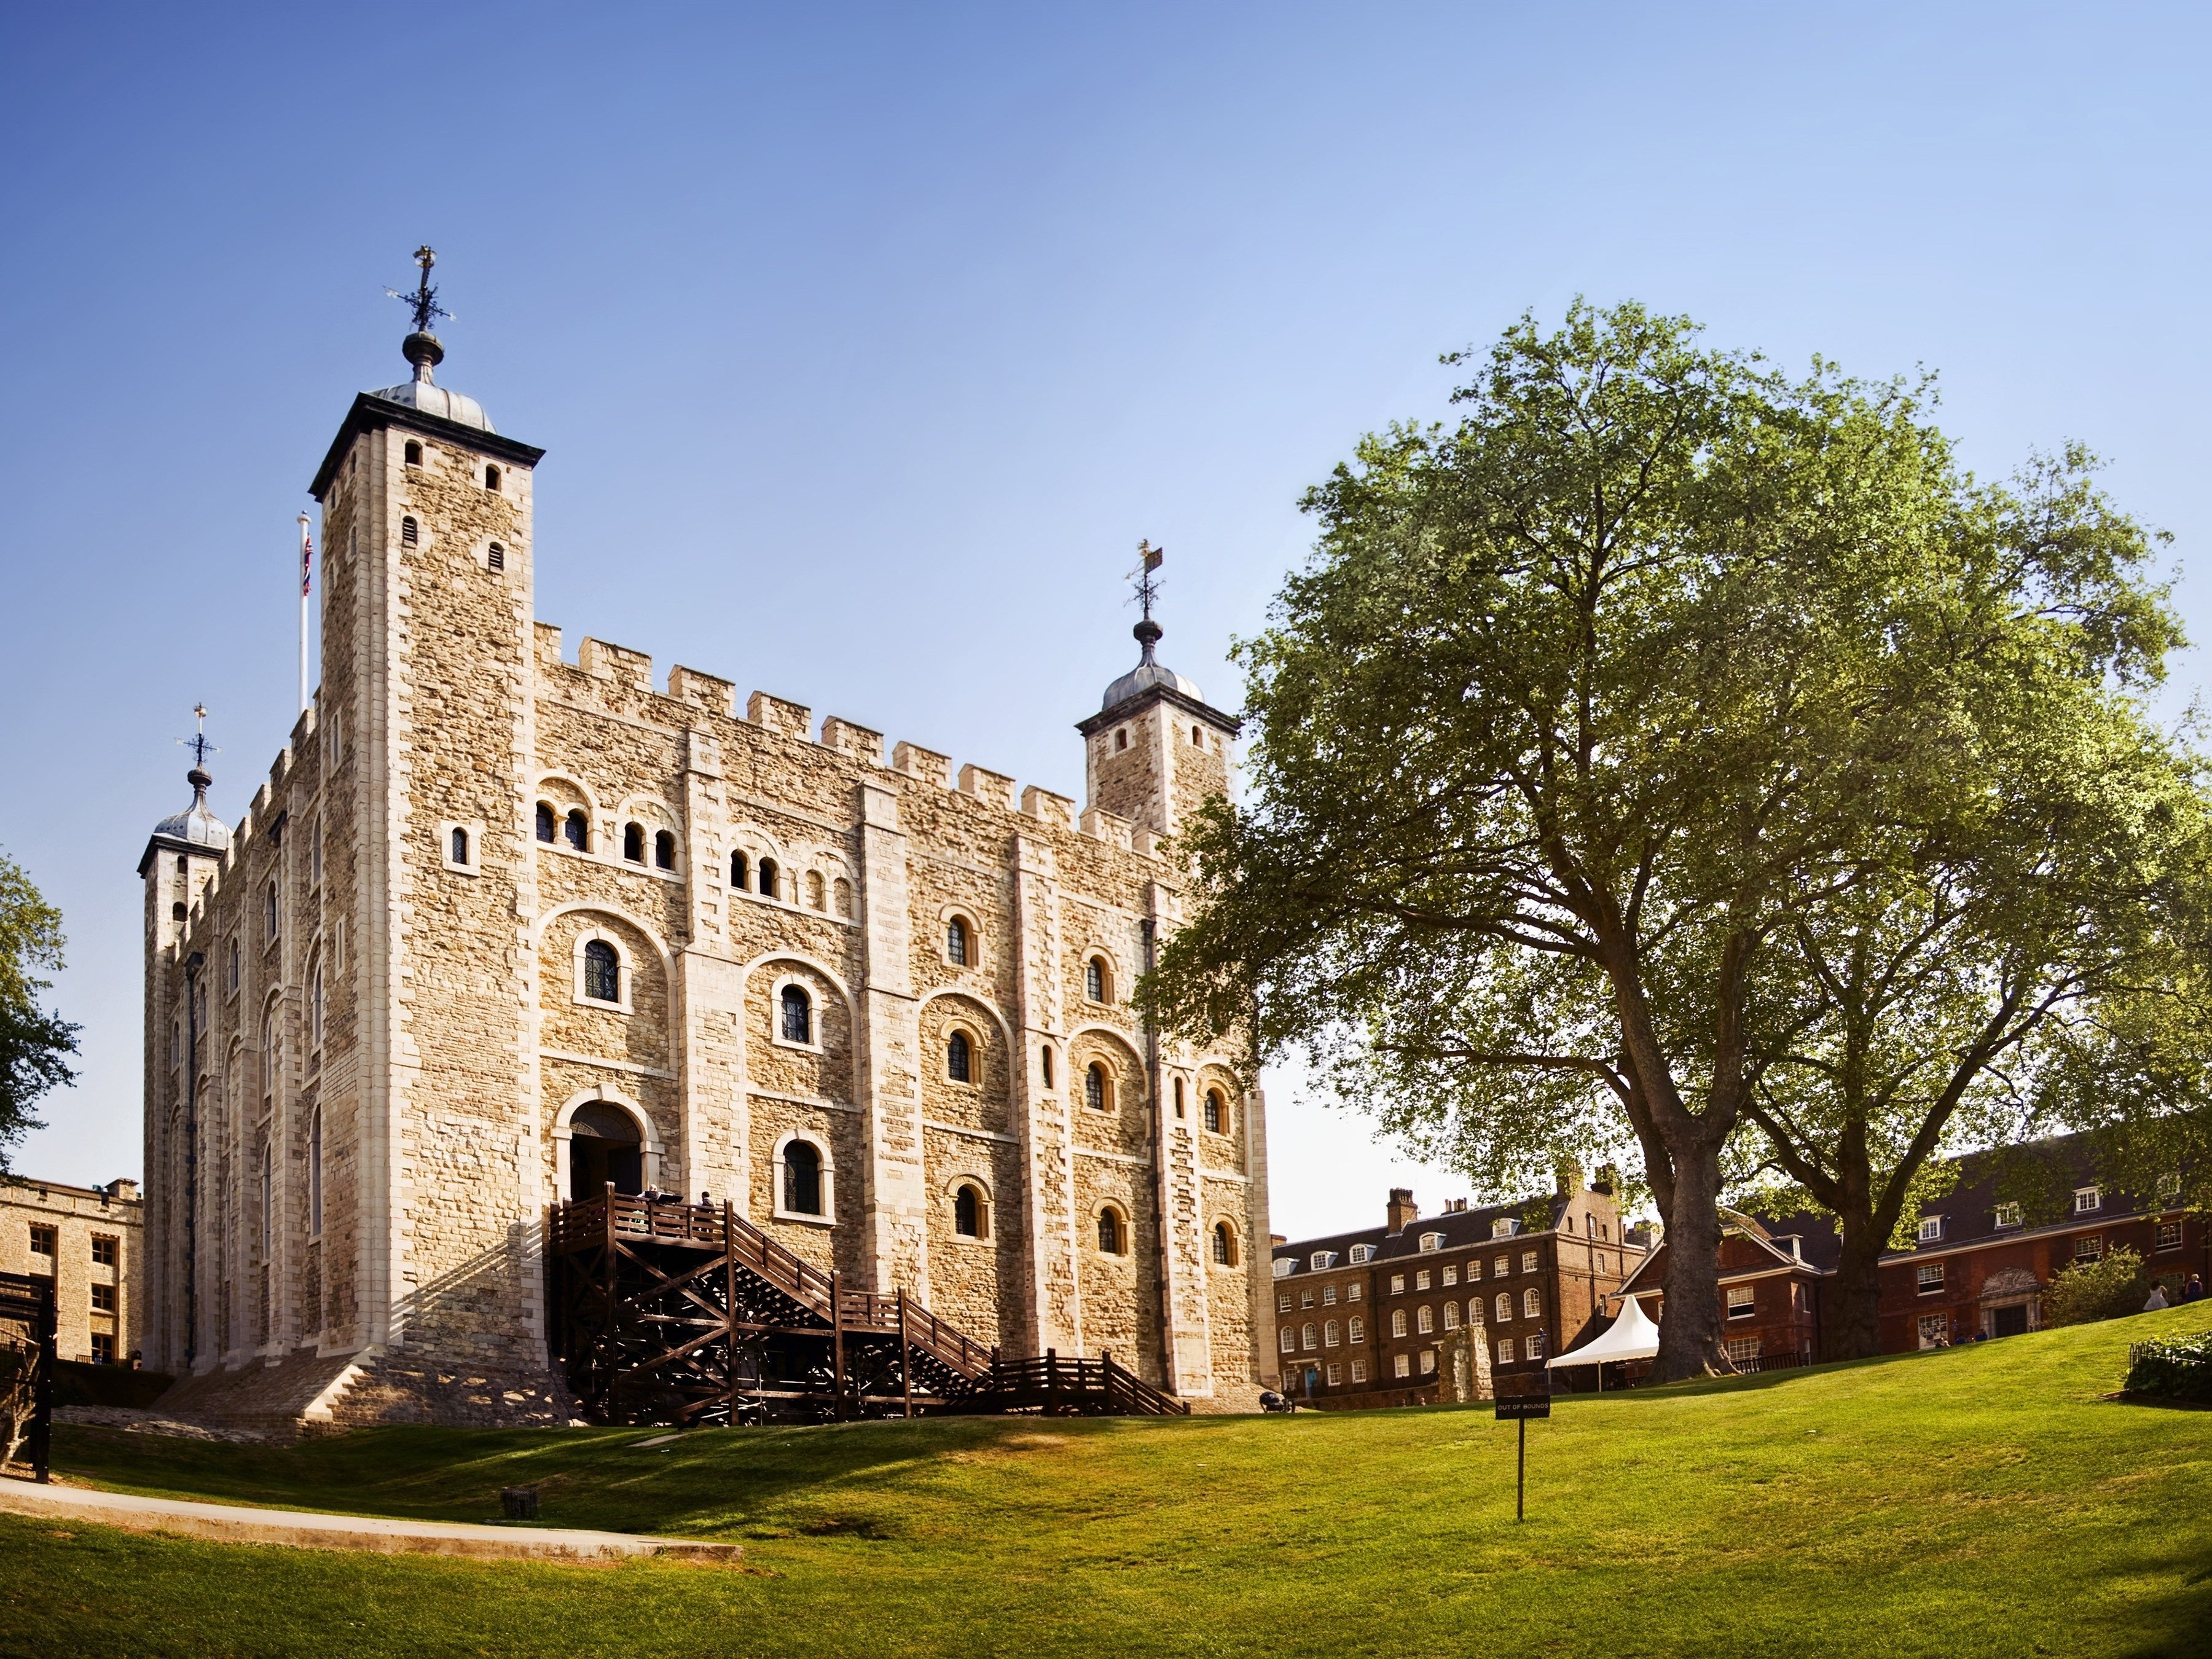 3. Tower of London